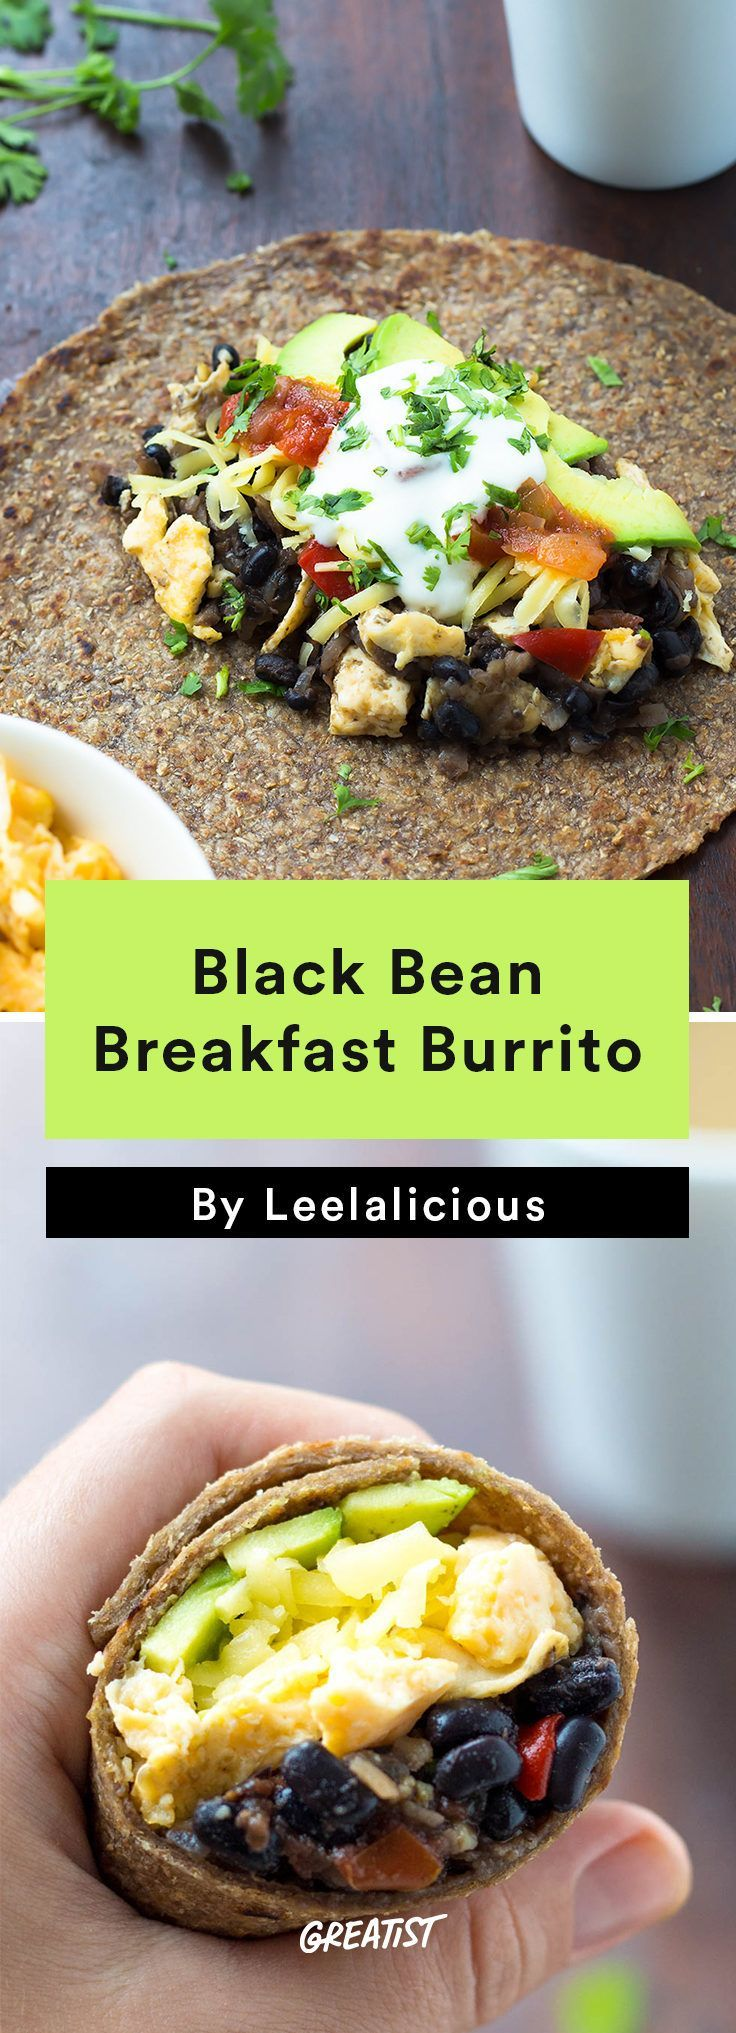 Scrambled Egg Recipes: Black Bean Breakfast Burrito